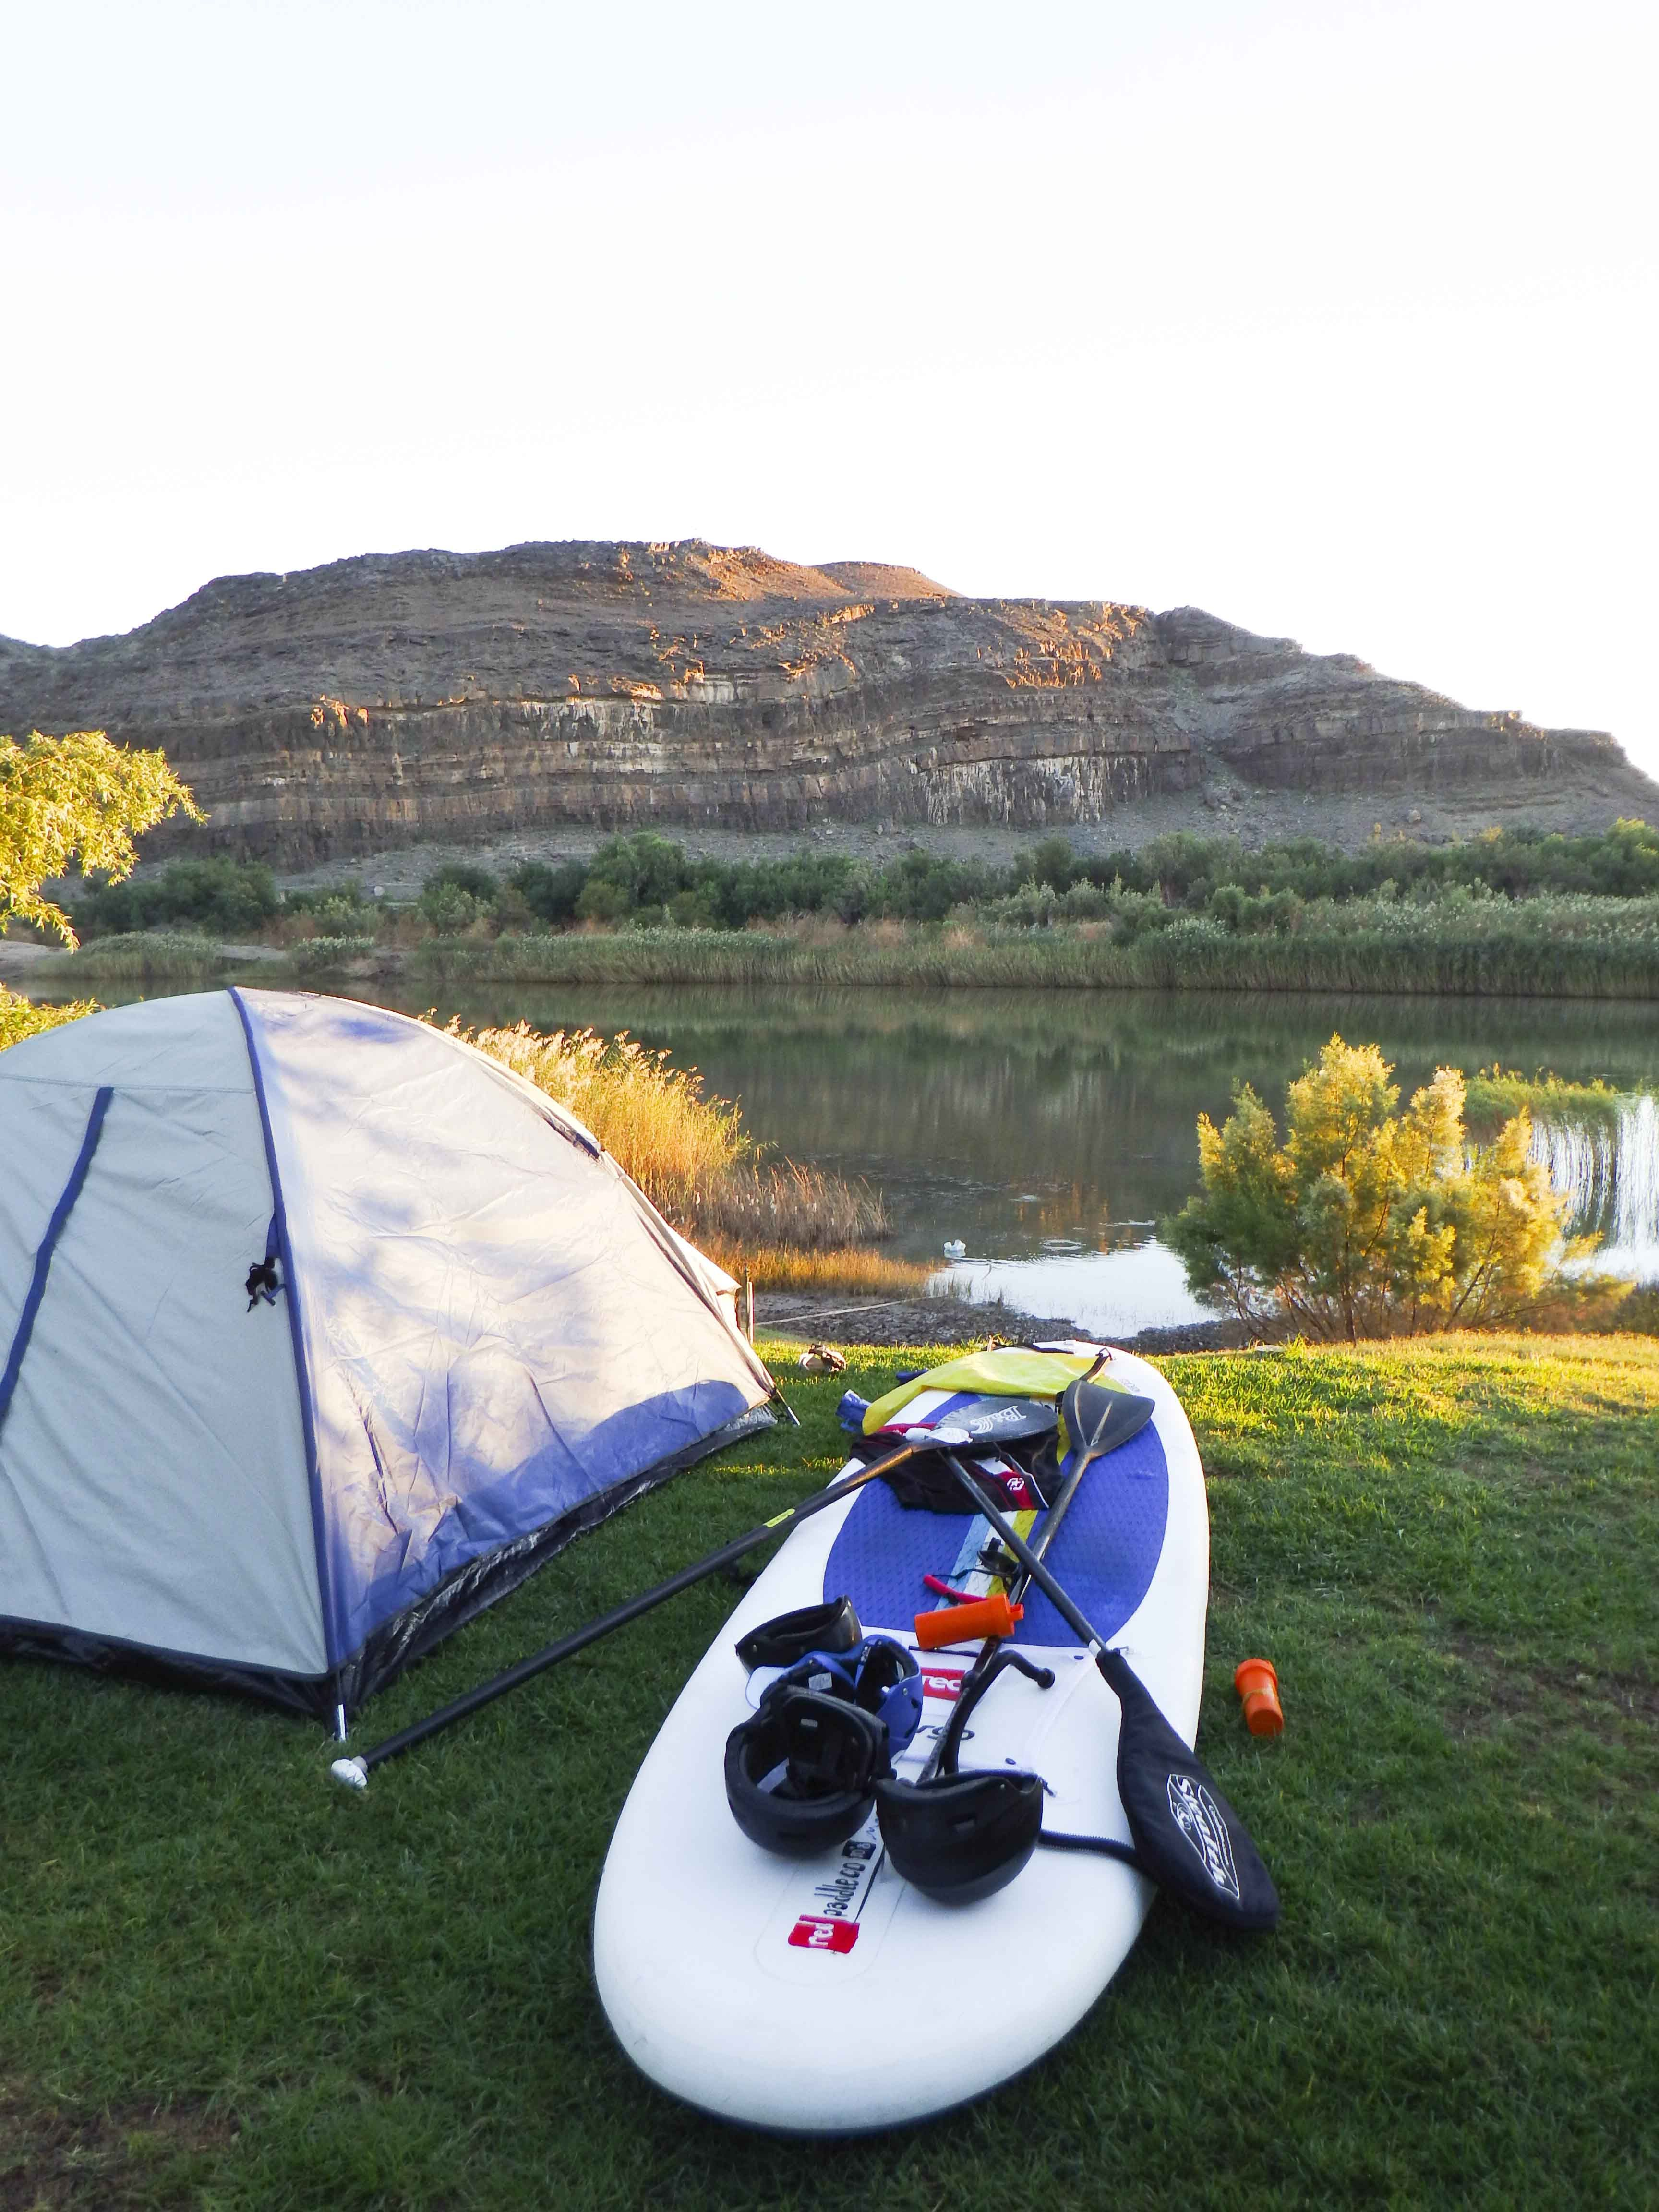 Camping on the banks of the Orange River.